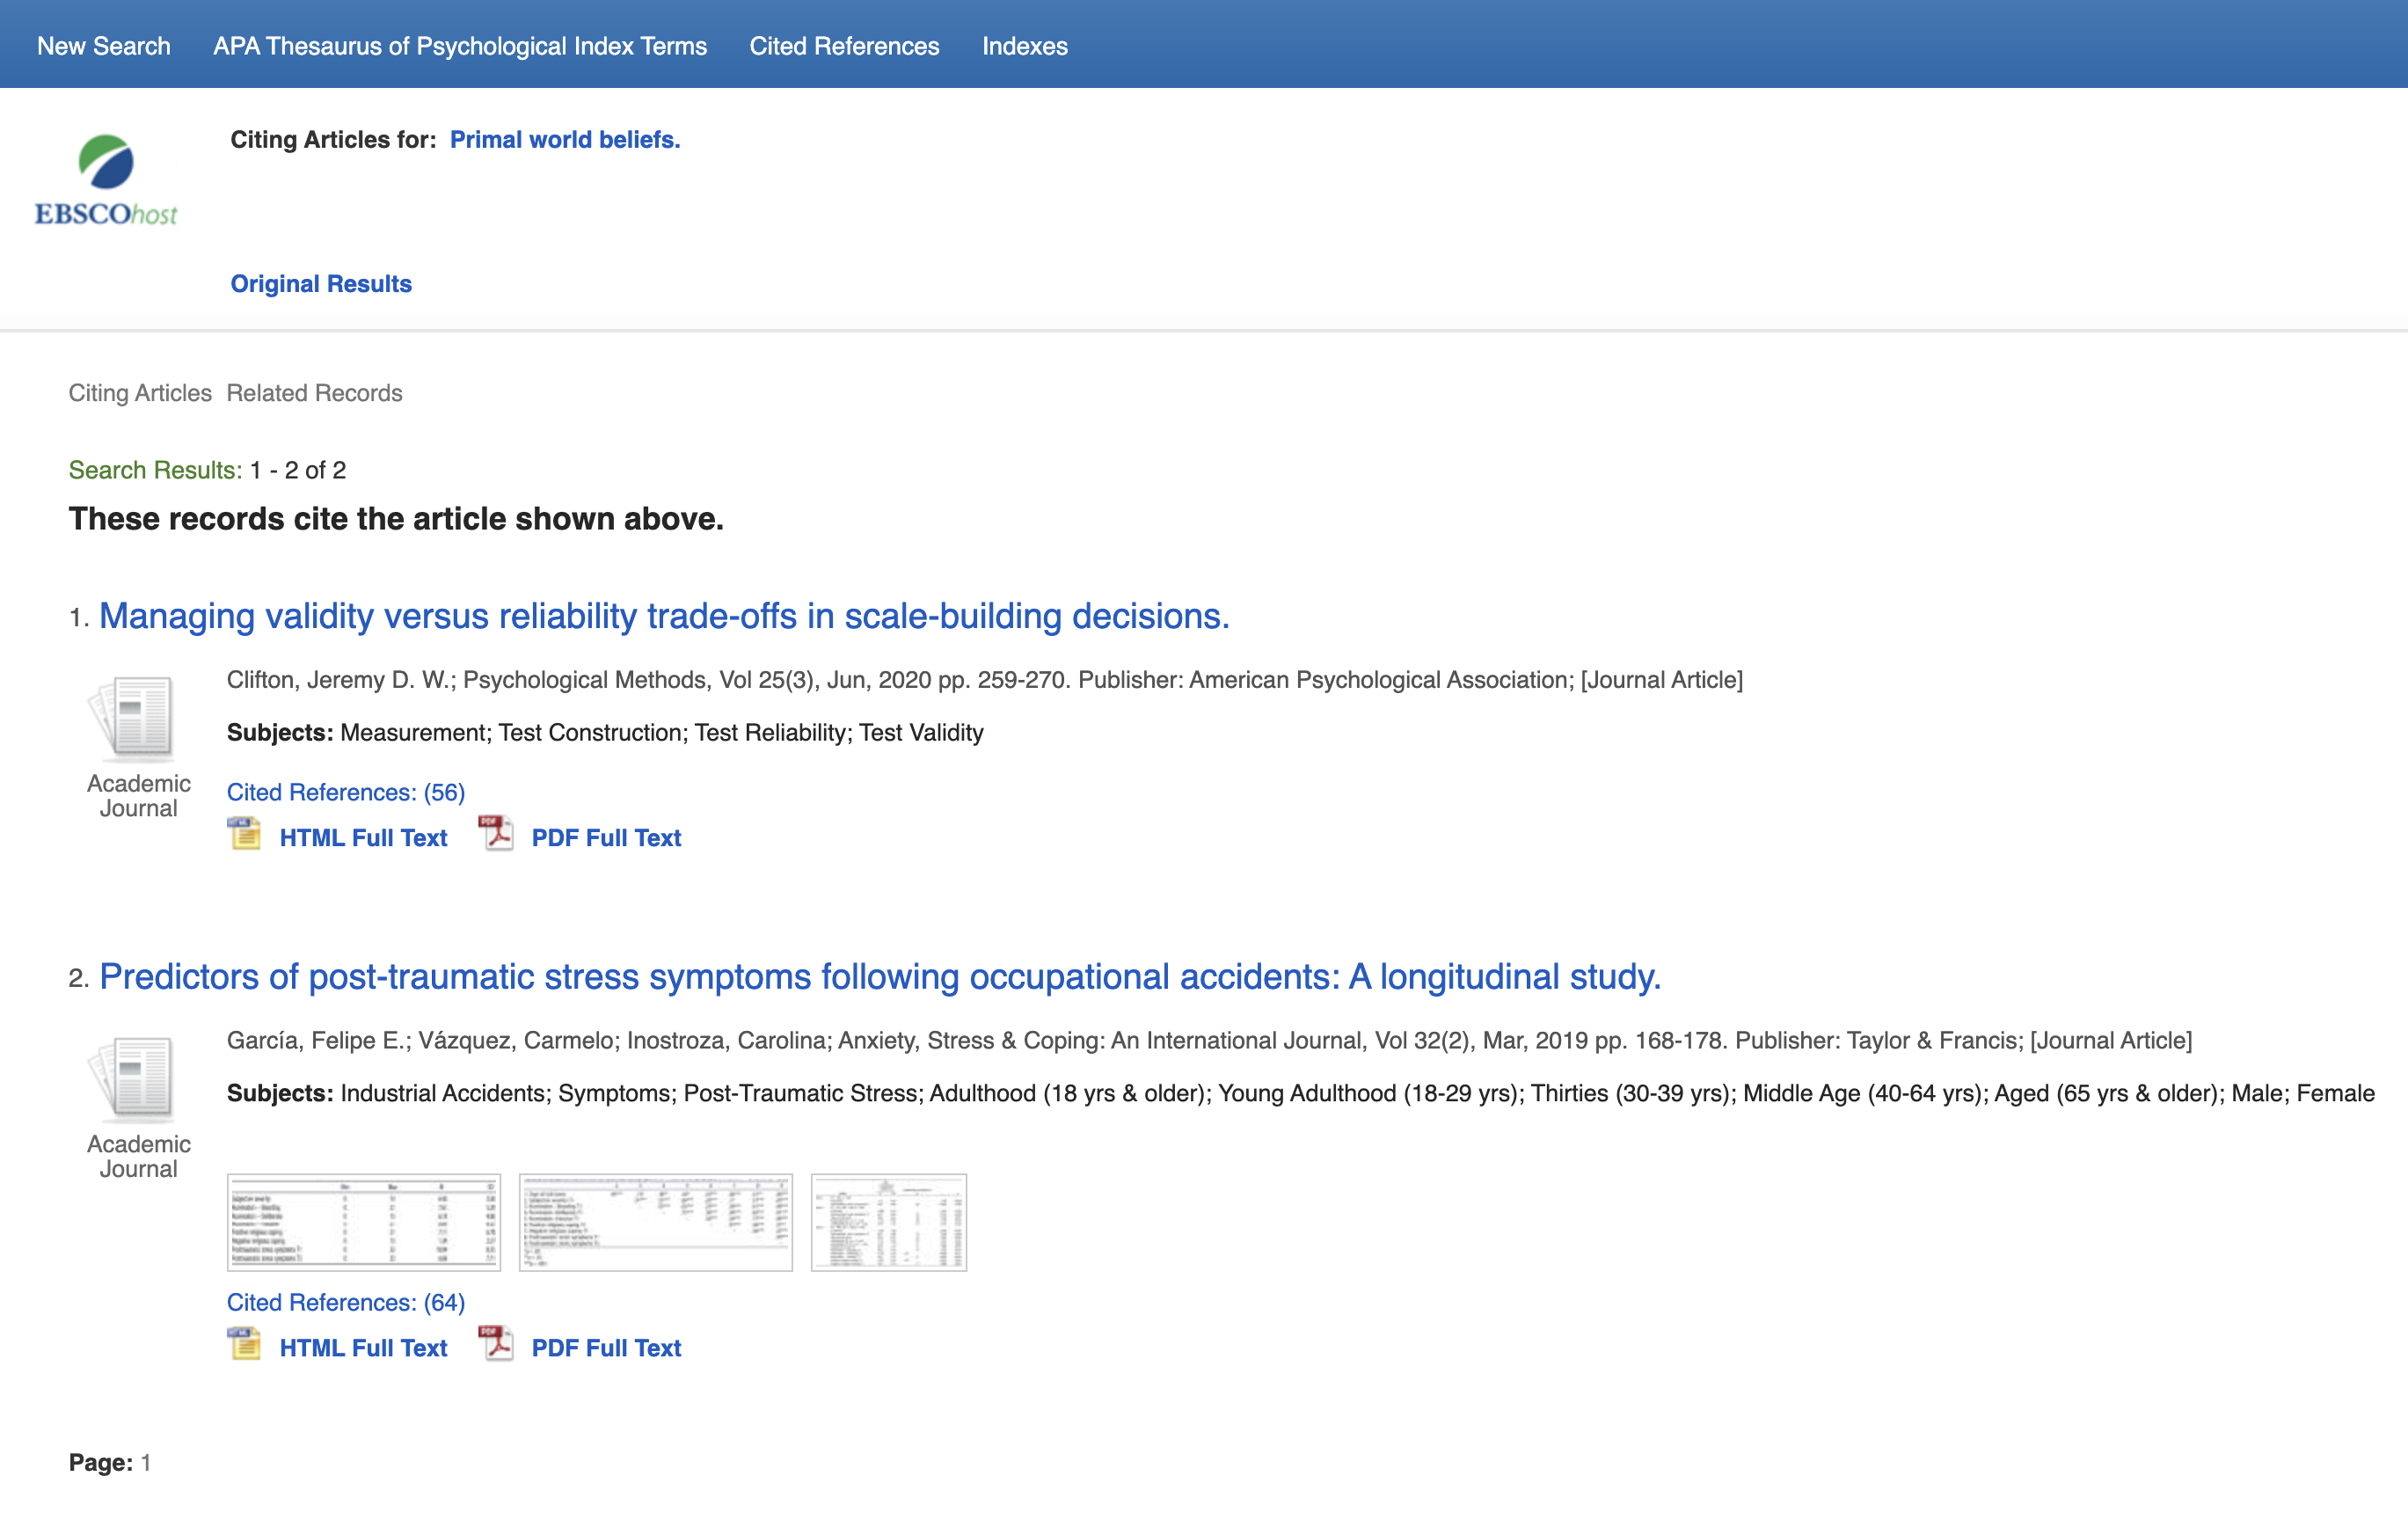 Citing Articles for: Primal World Beliefs. Original Results Search Results: 1 - 2 of 2 These records cite the article shown above. 1. Managing Validity versus Reliability trade-offs in scale-building decisions. 2. Predictors of post-traumatic stress symptoms following occupational accidents: A longitudinal study.